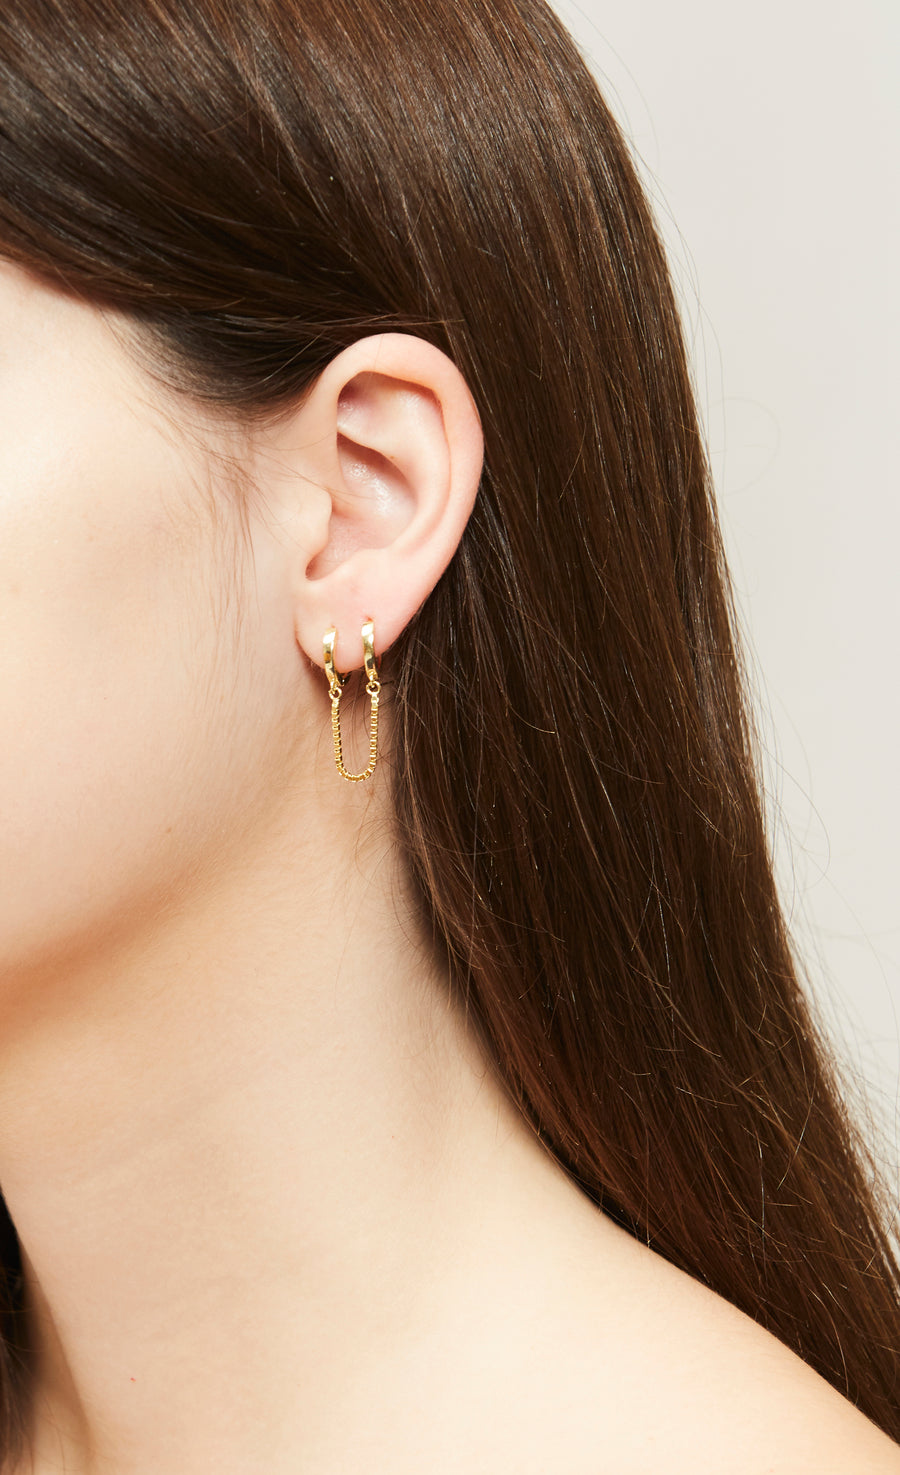 Bardi cuff earrings (gold or silver)